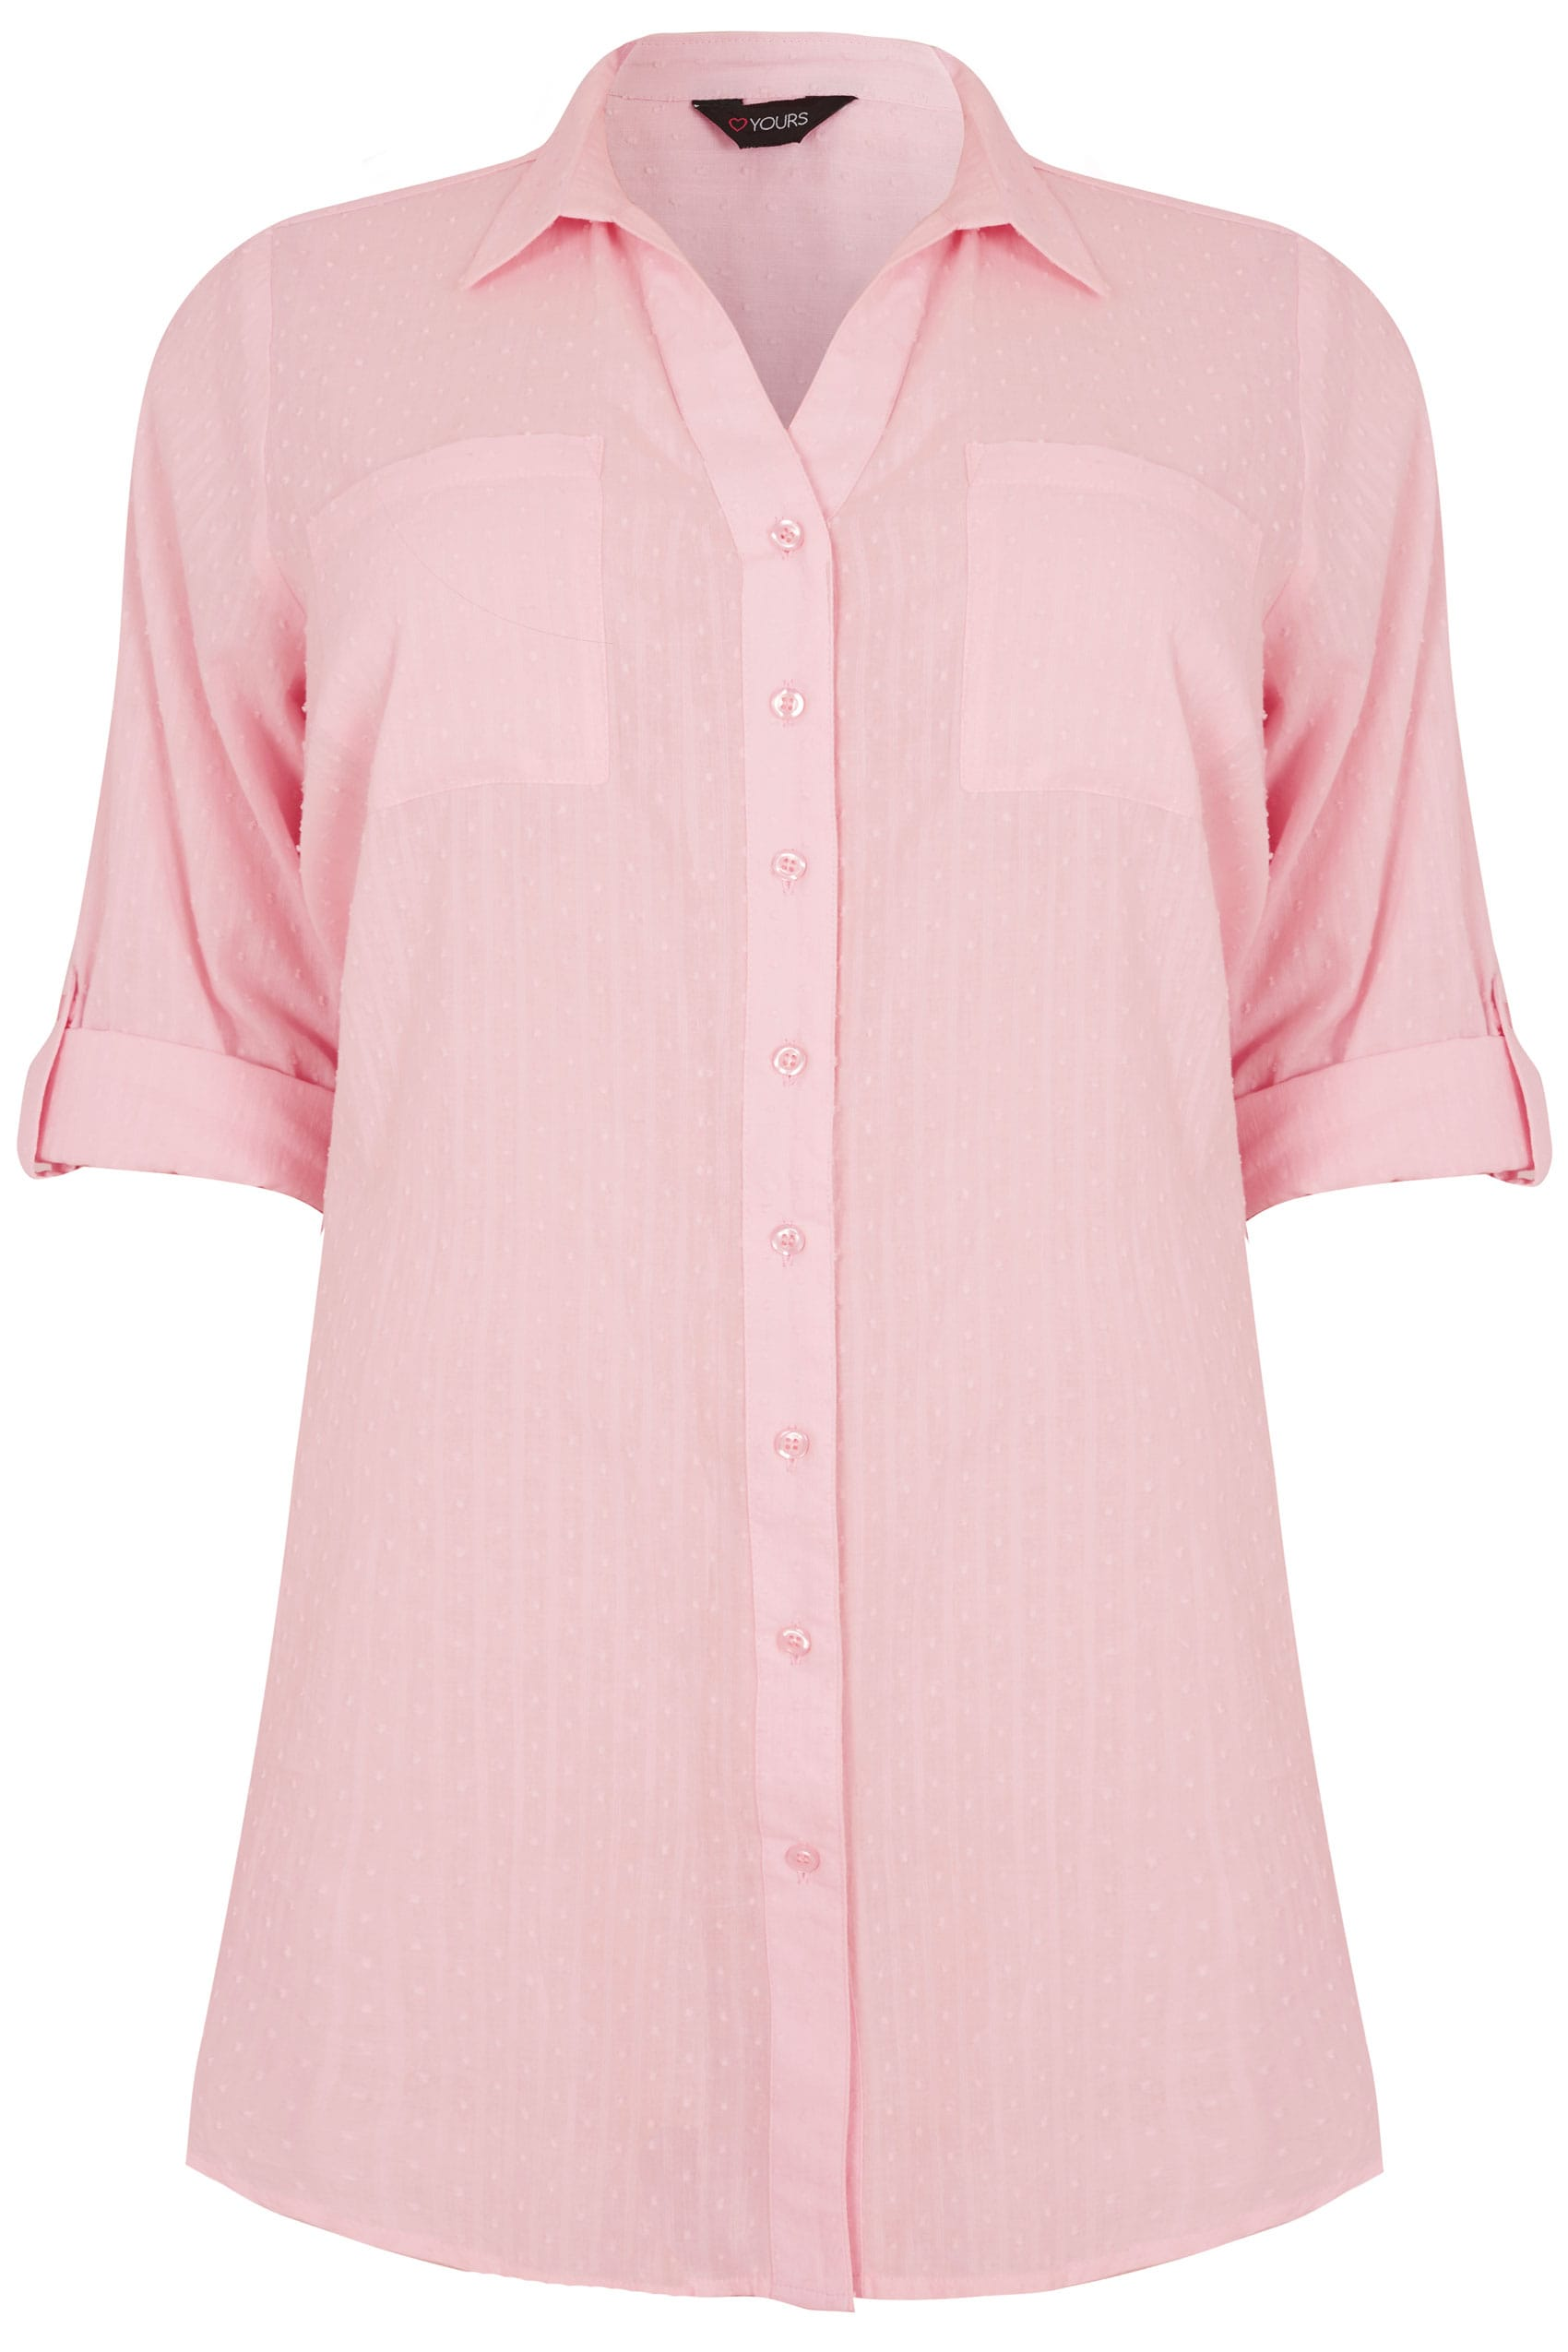 Pink Dobby Textured Shirt With Tie Fastening Plus Size 16